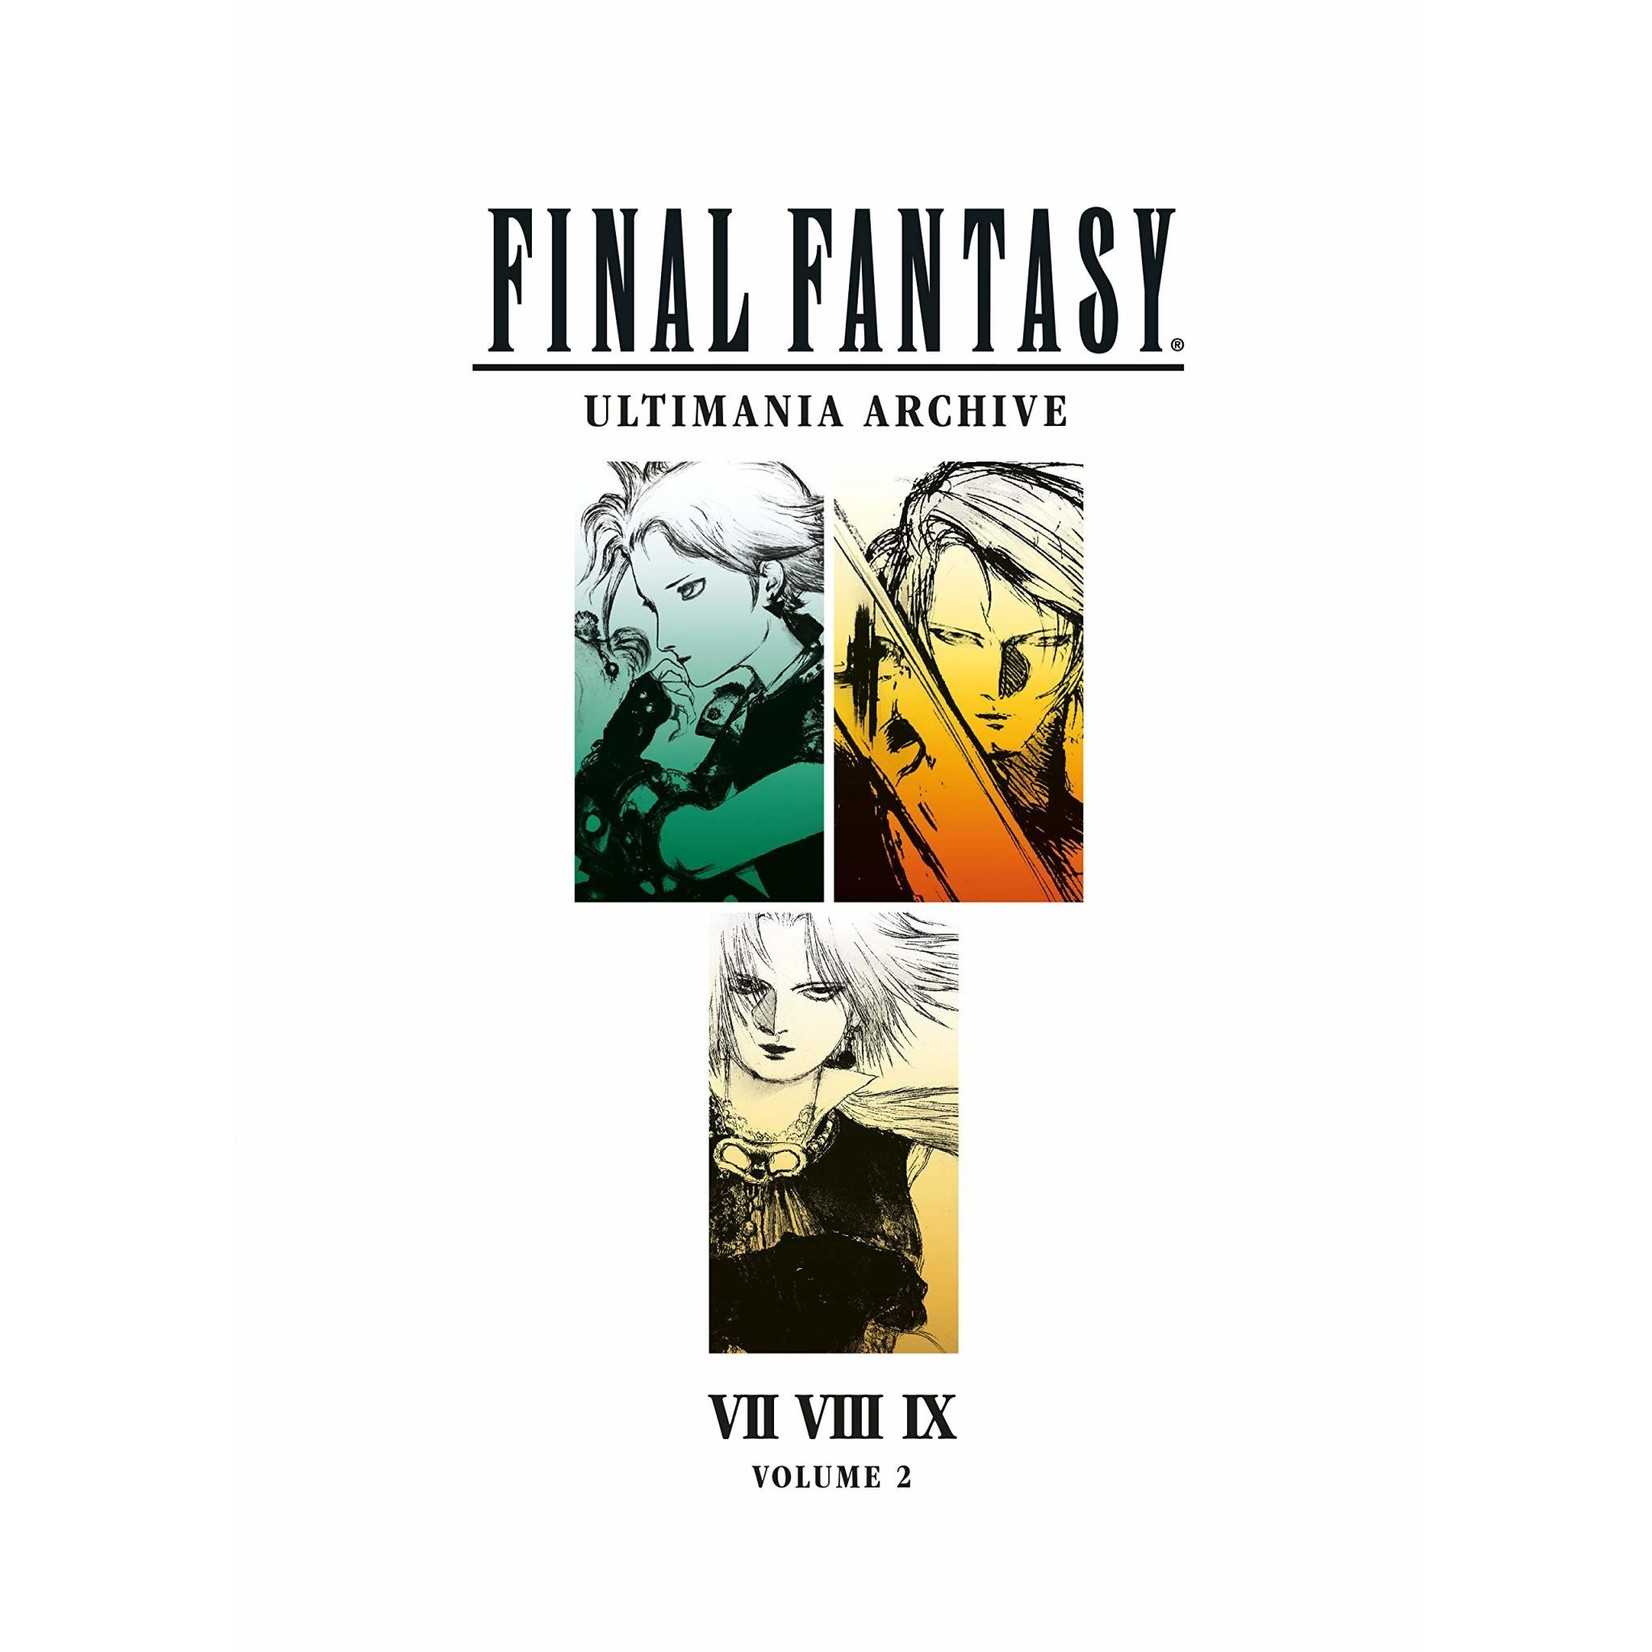 Final Fantasy Ultimania Archive :VII VIII IX, Hardcover by Square